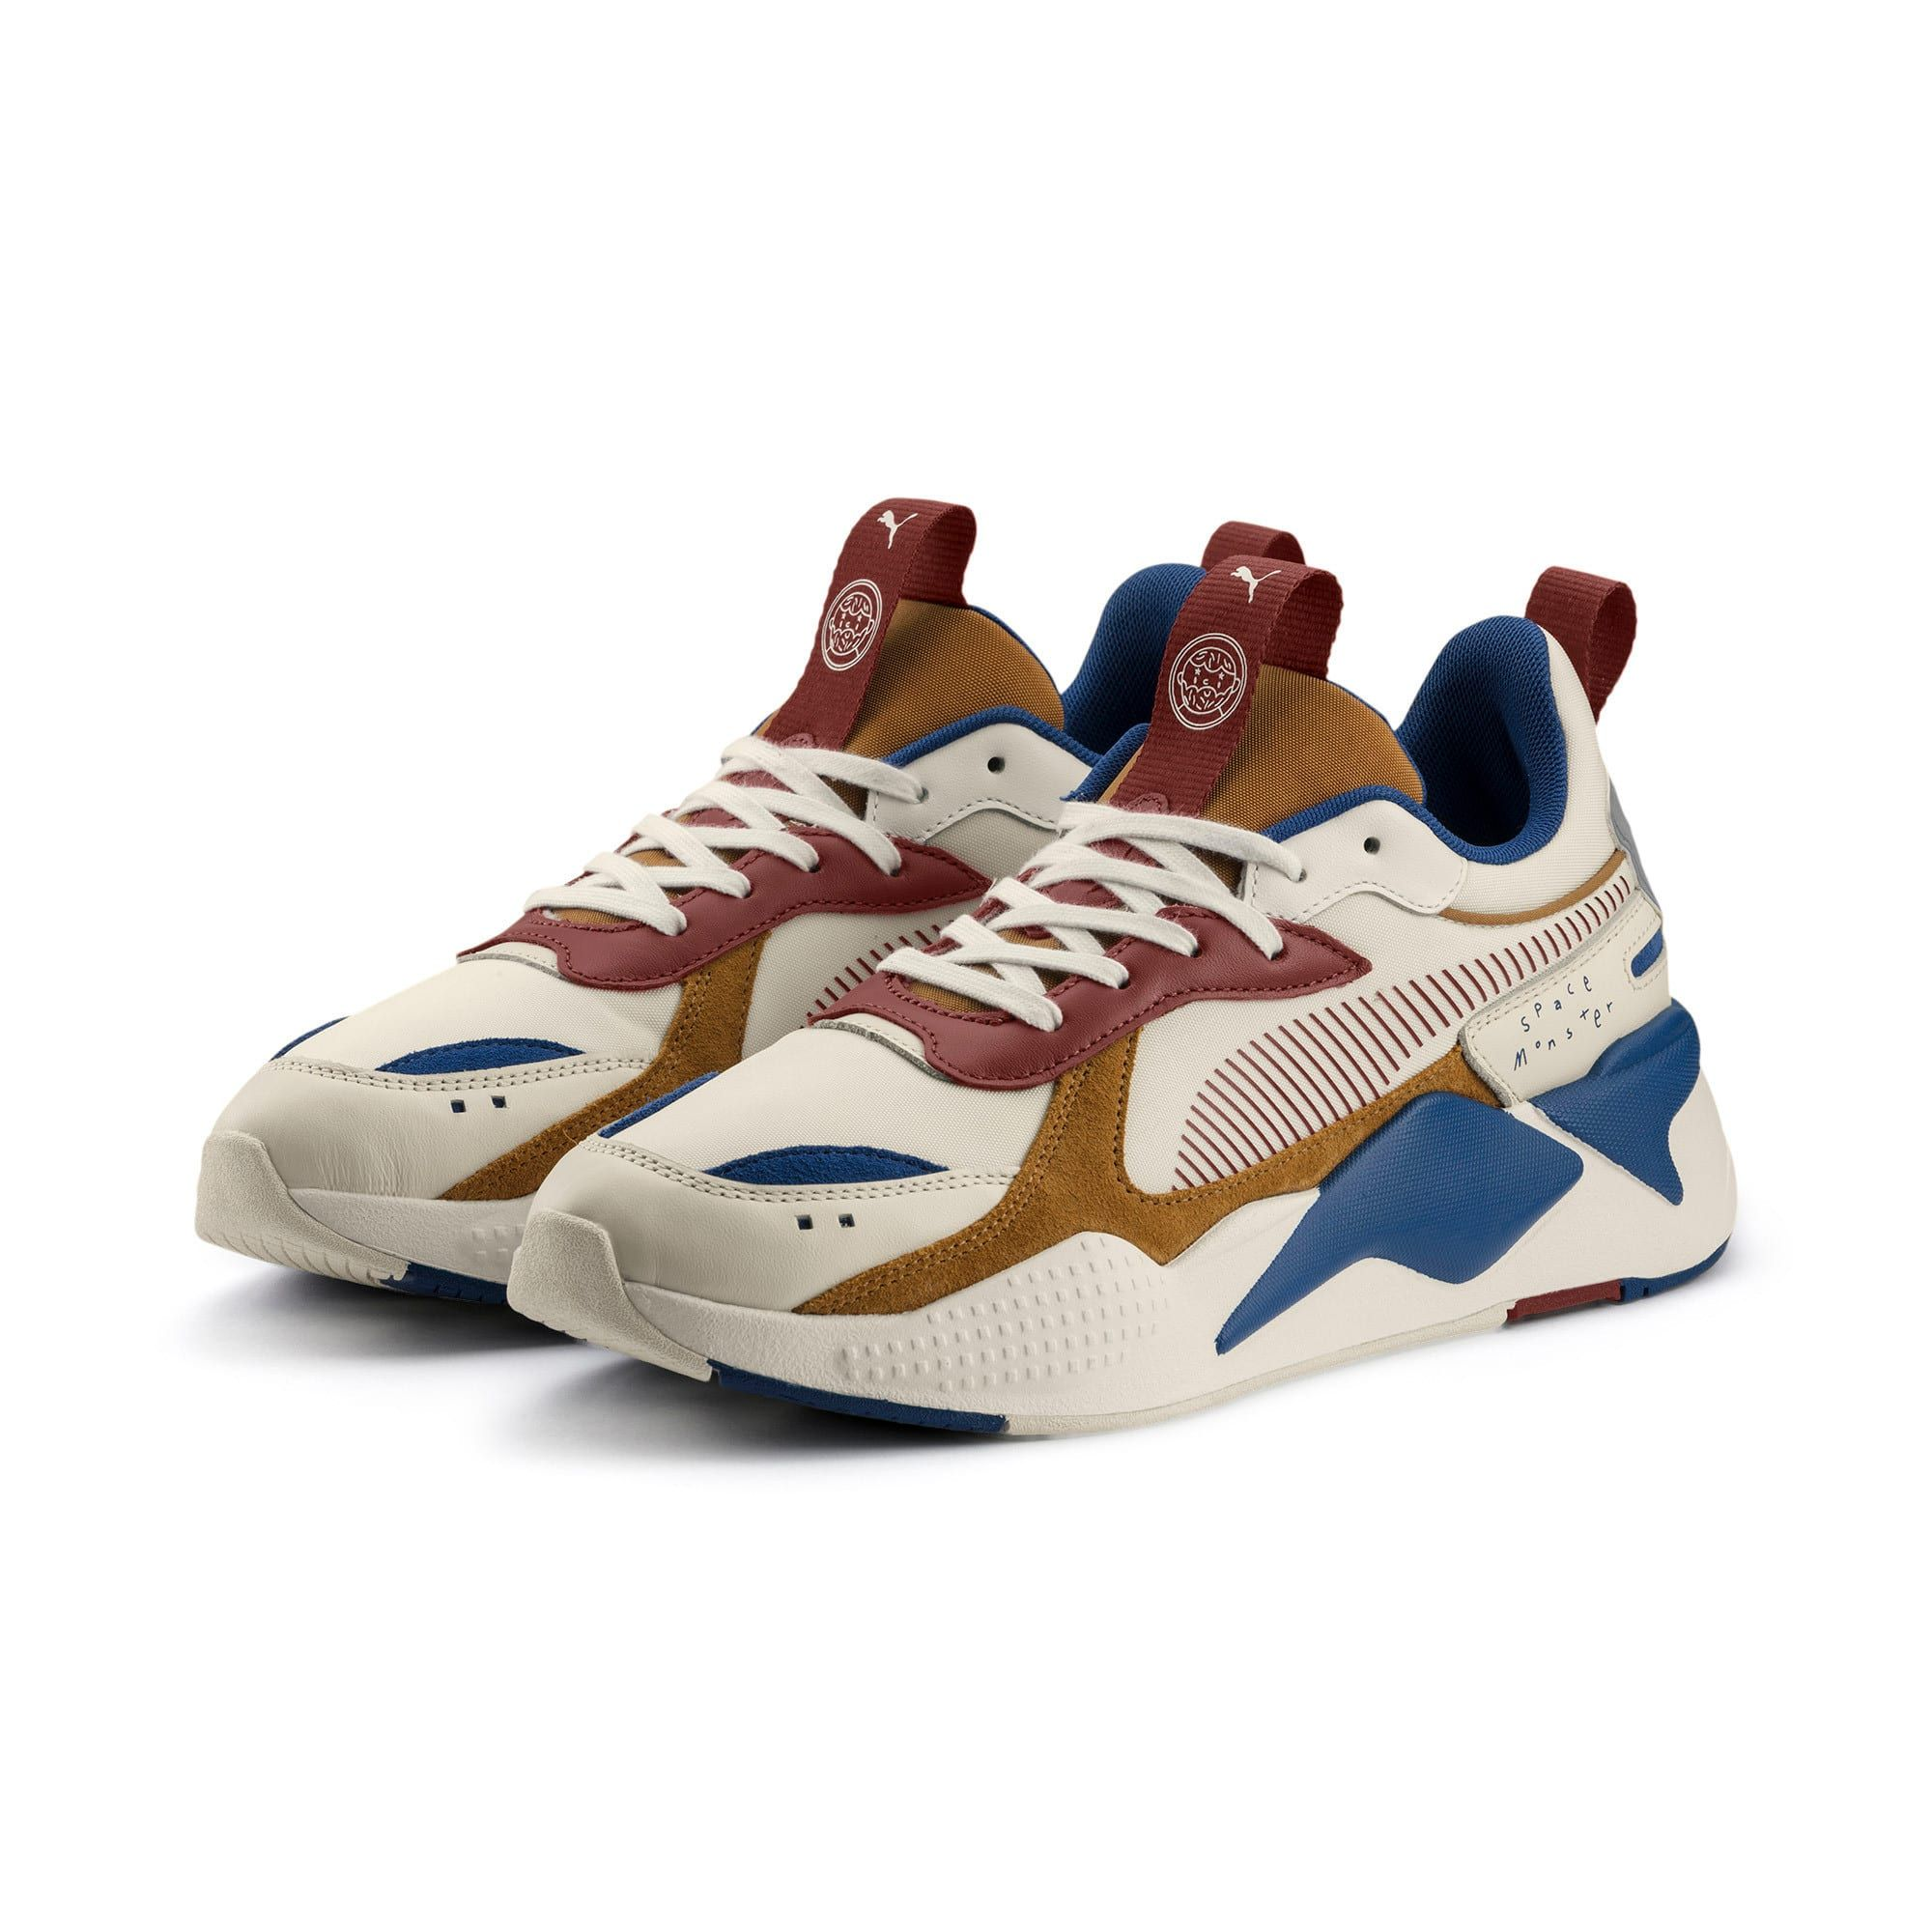 Puma RS X X Tyakasha shoes white blue